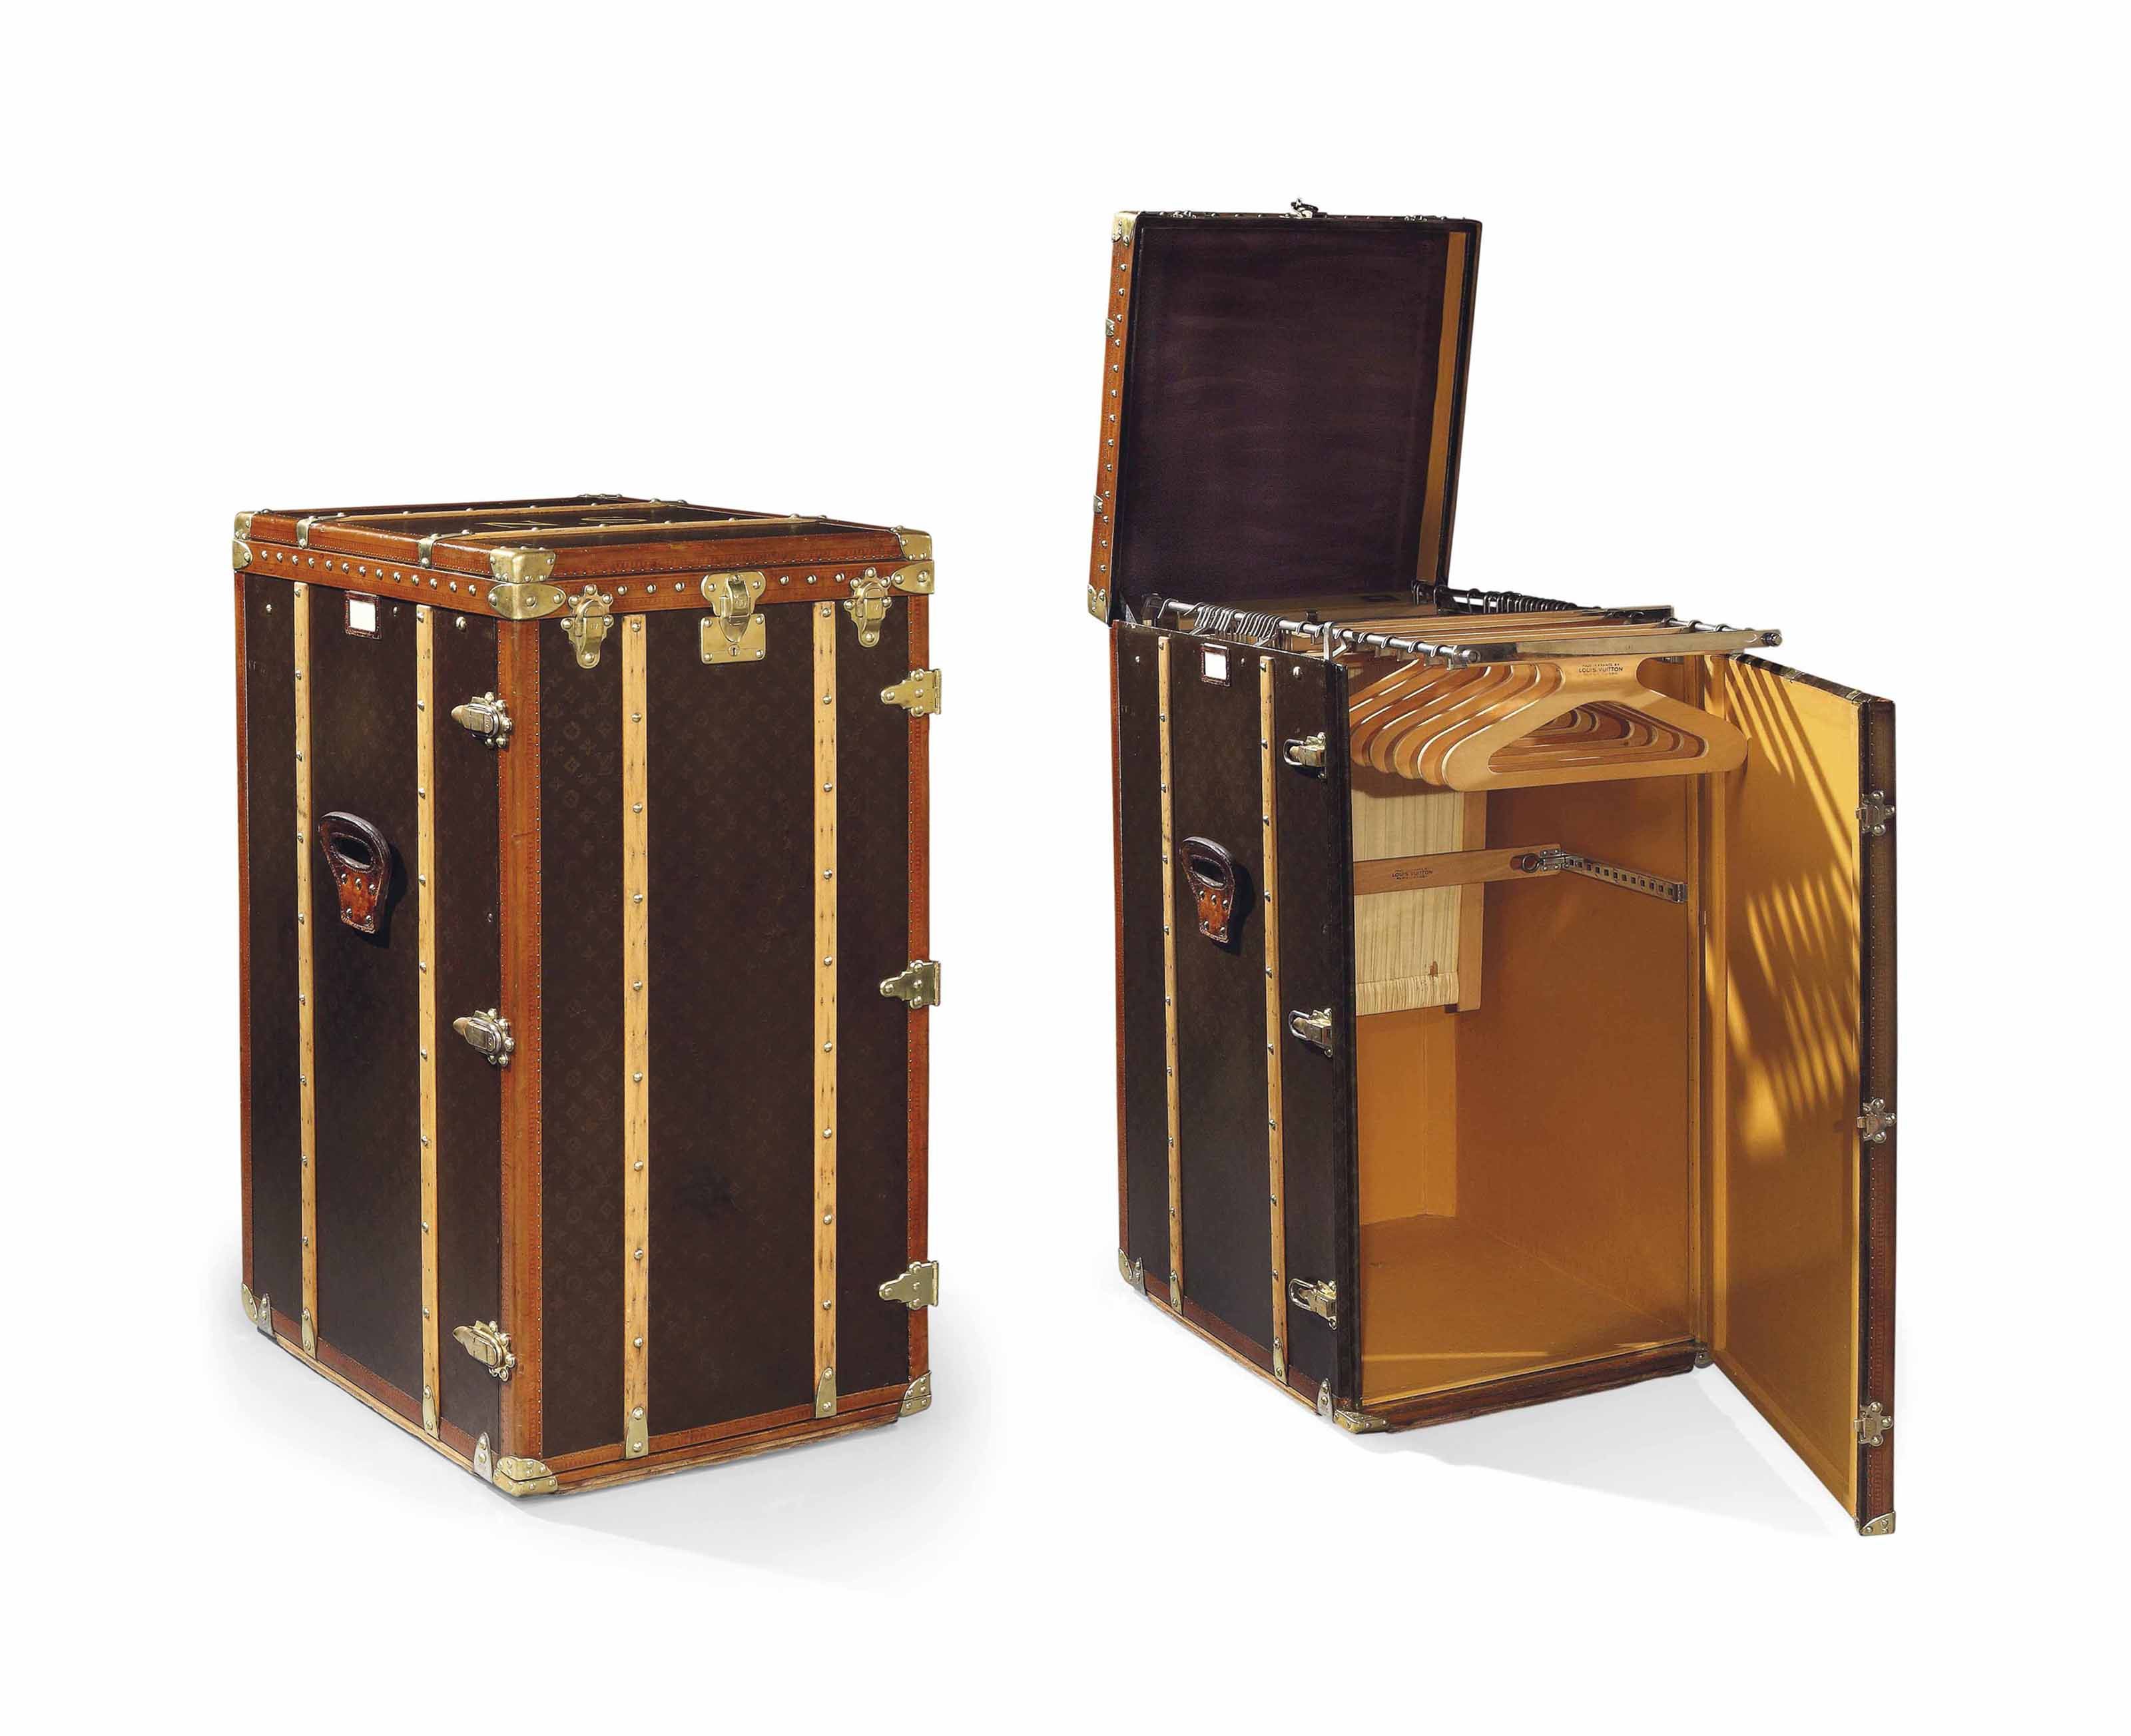 A MAGNIFICENT MONOGRAM CANVAS WARDROBE TRUNK, ONCE OWNED BY NORMA SHEARER